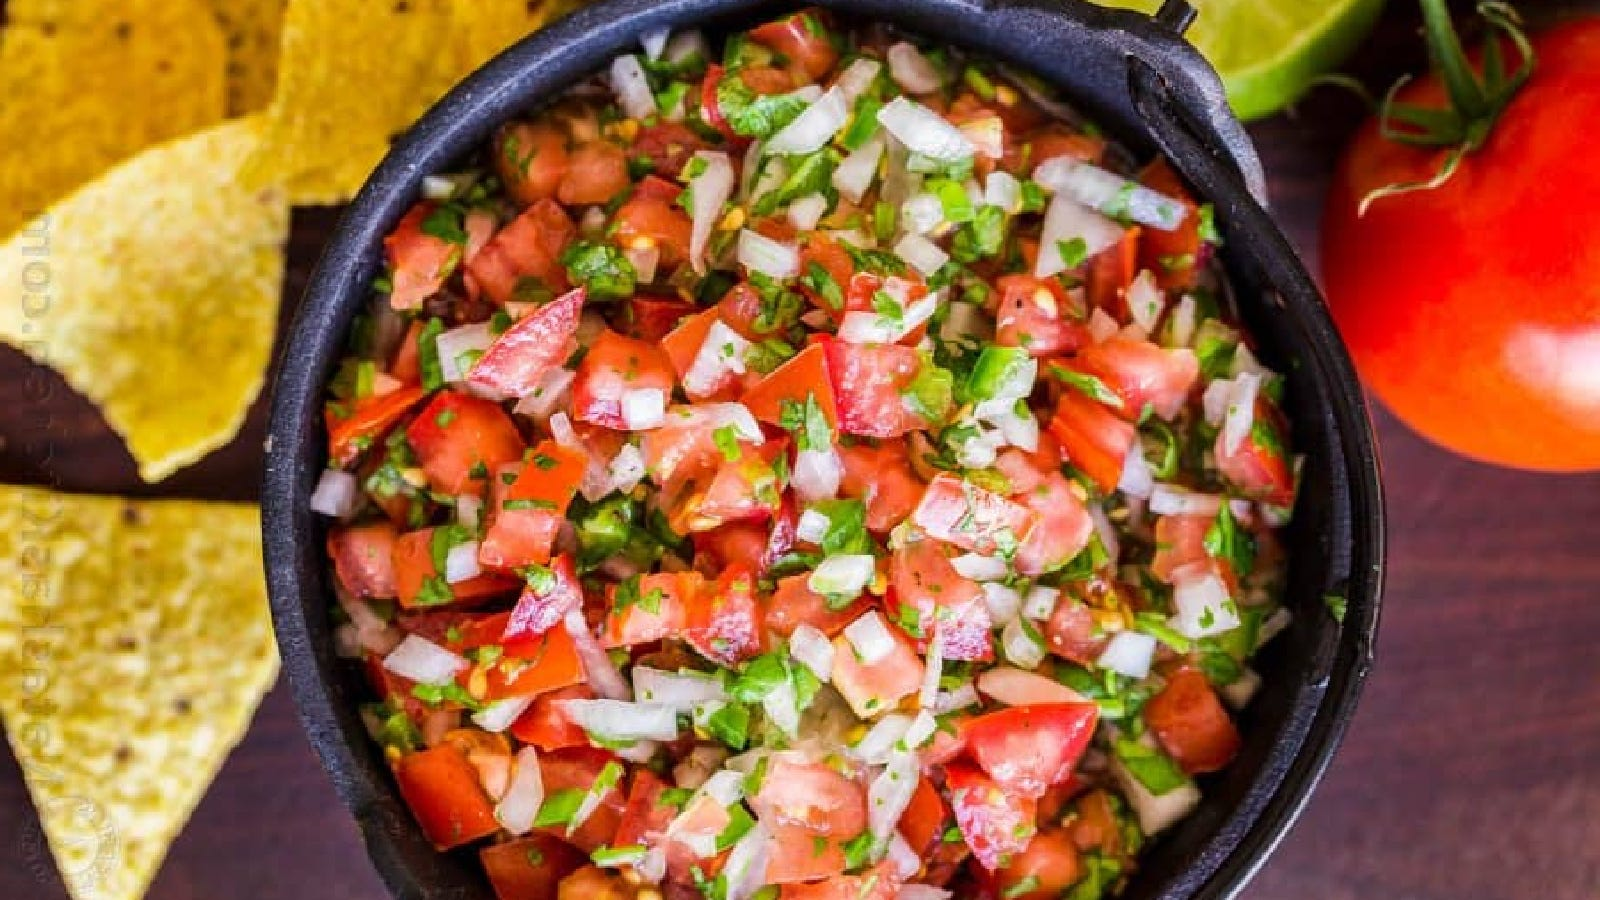 A bowl full of Pico De Gallo with chips, tomatoes, and lime on the side.